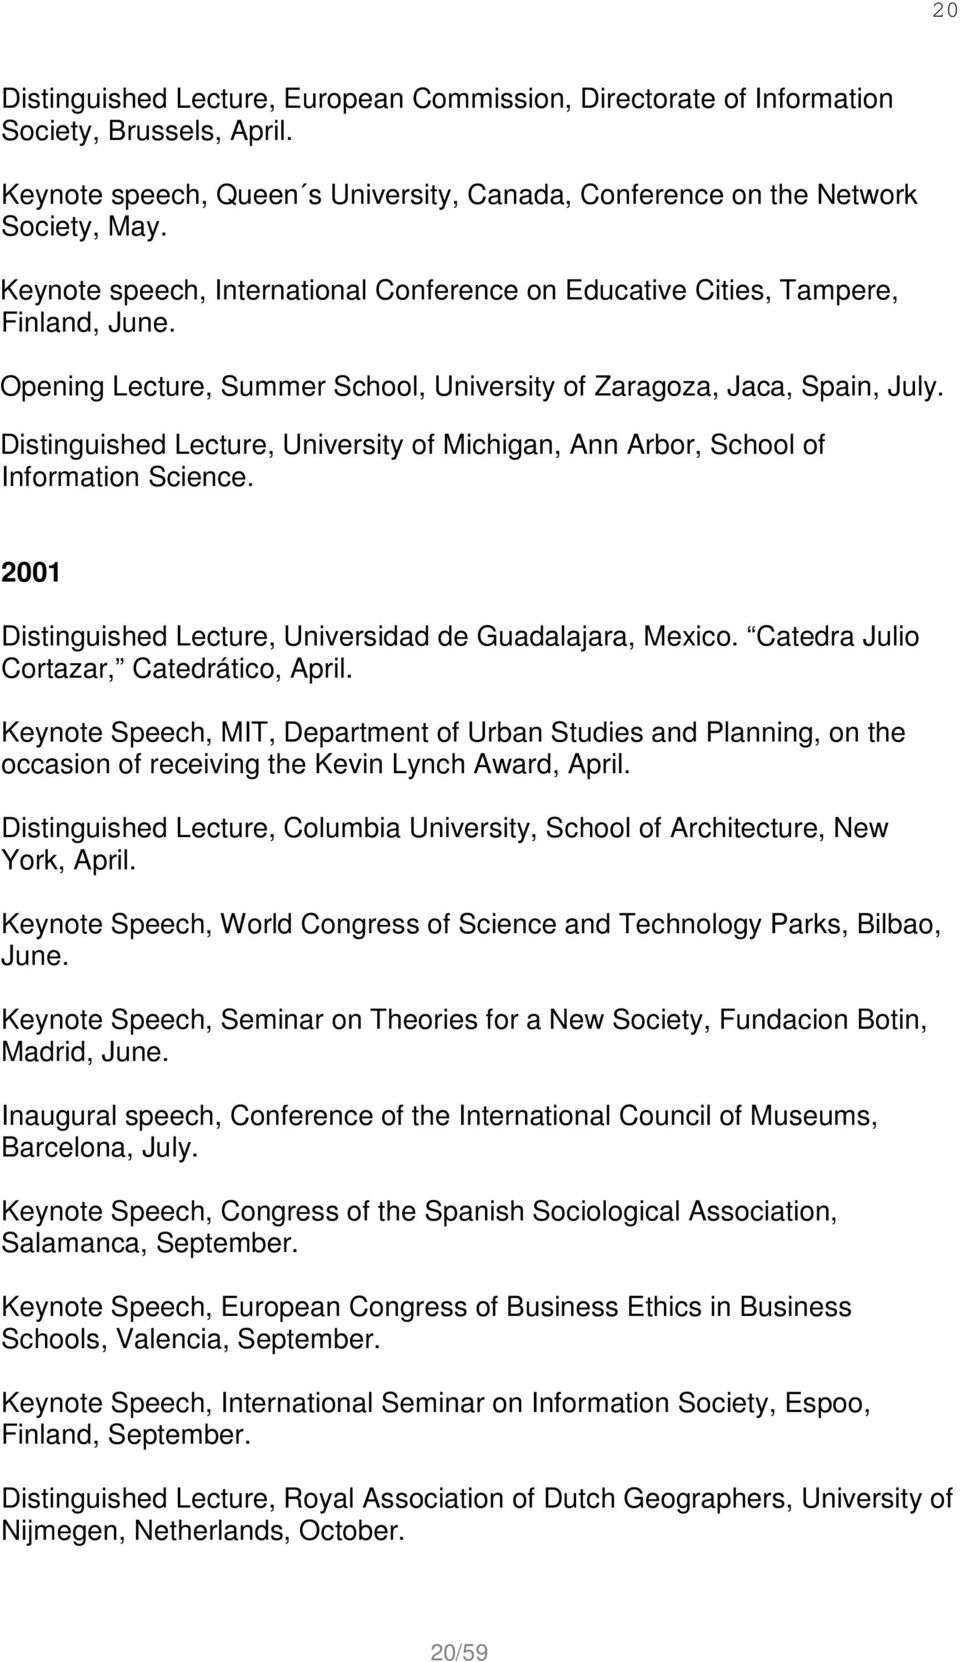 Distinguished Lecture, University of Michigan, Ann Arbor, School of Information Science. 2001 Distinguished Lecture, Universidad de Guadalajara, Mexico. Catedra Julio Cortazar, Catedrático, April.